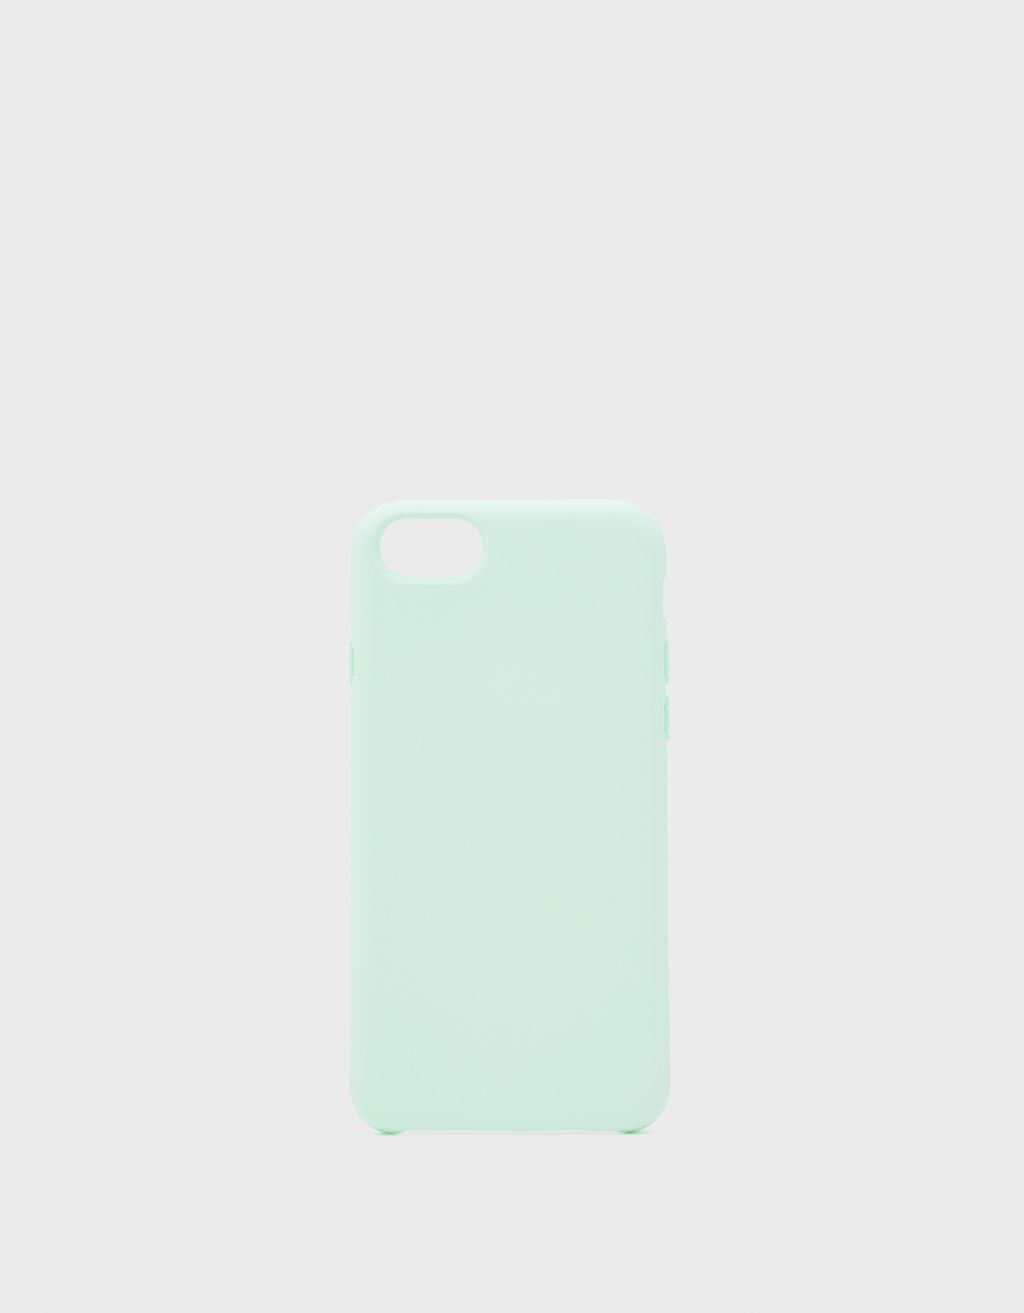 Monochrome iPhone 6 / 6S / 7 / 8 case